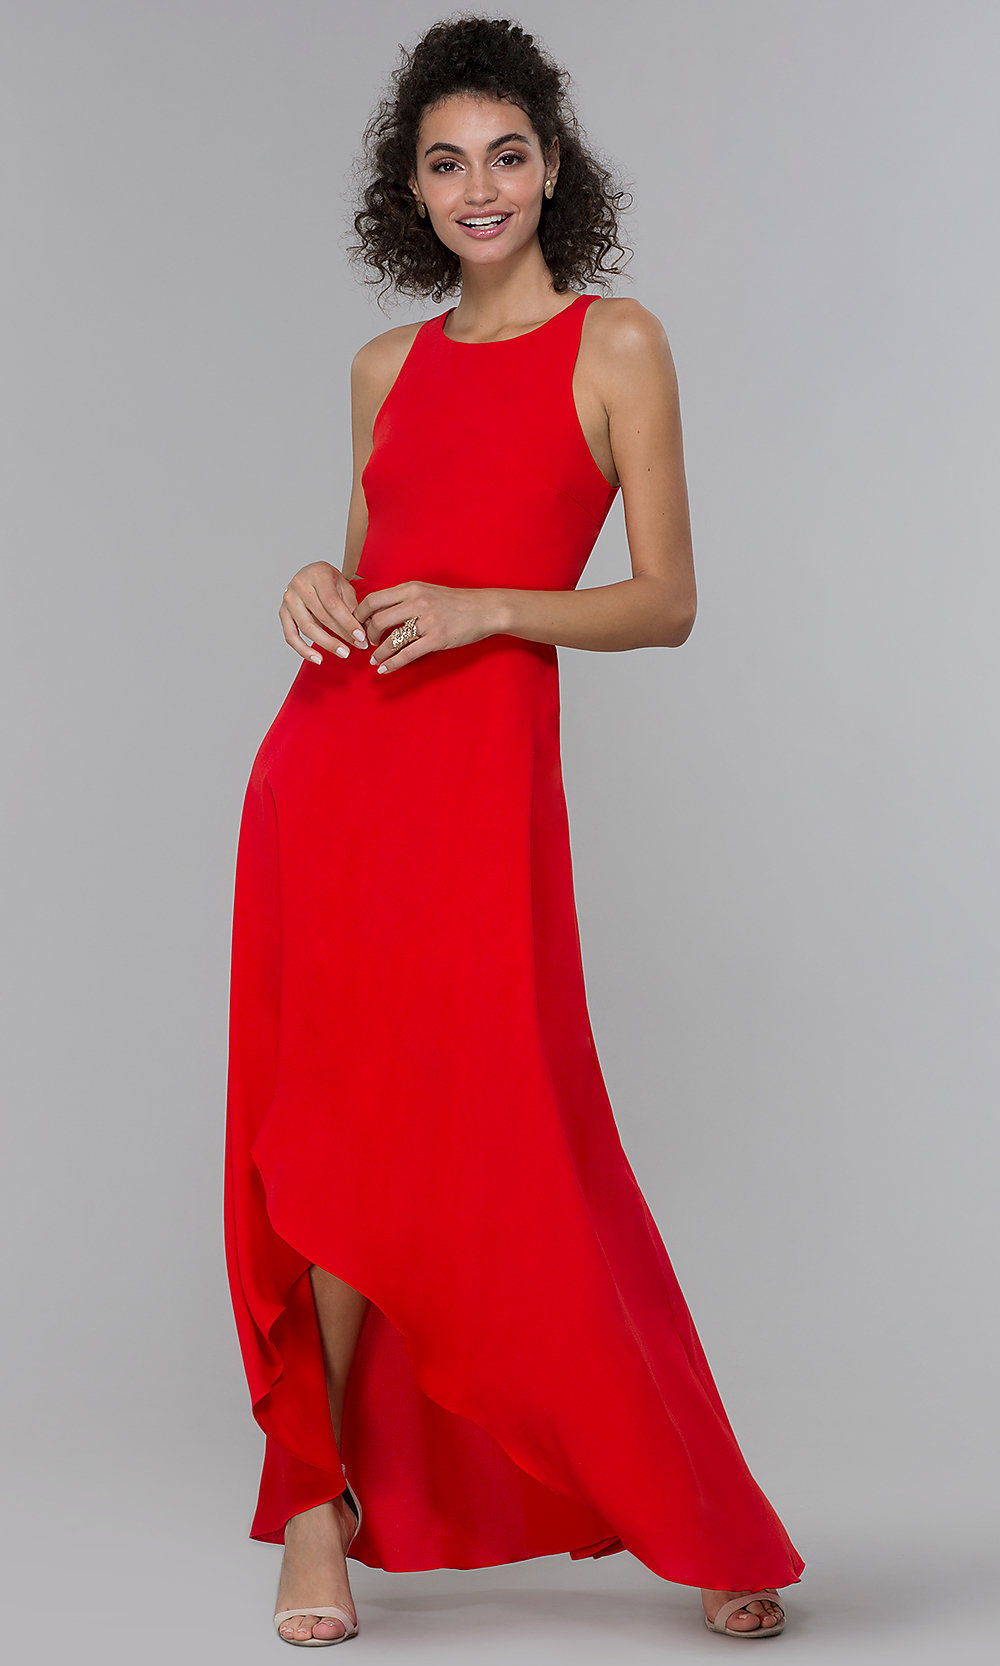 Formal High-Low Chiffon Wedding-Guest DressRed Dresses